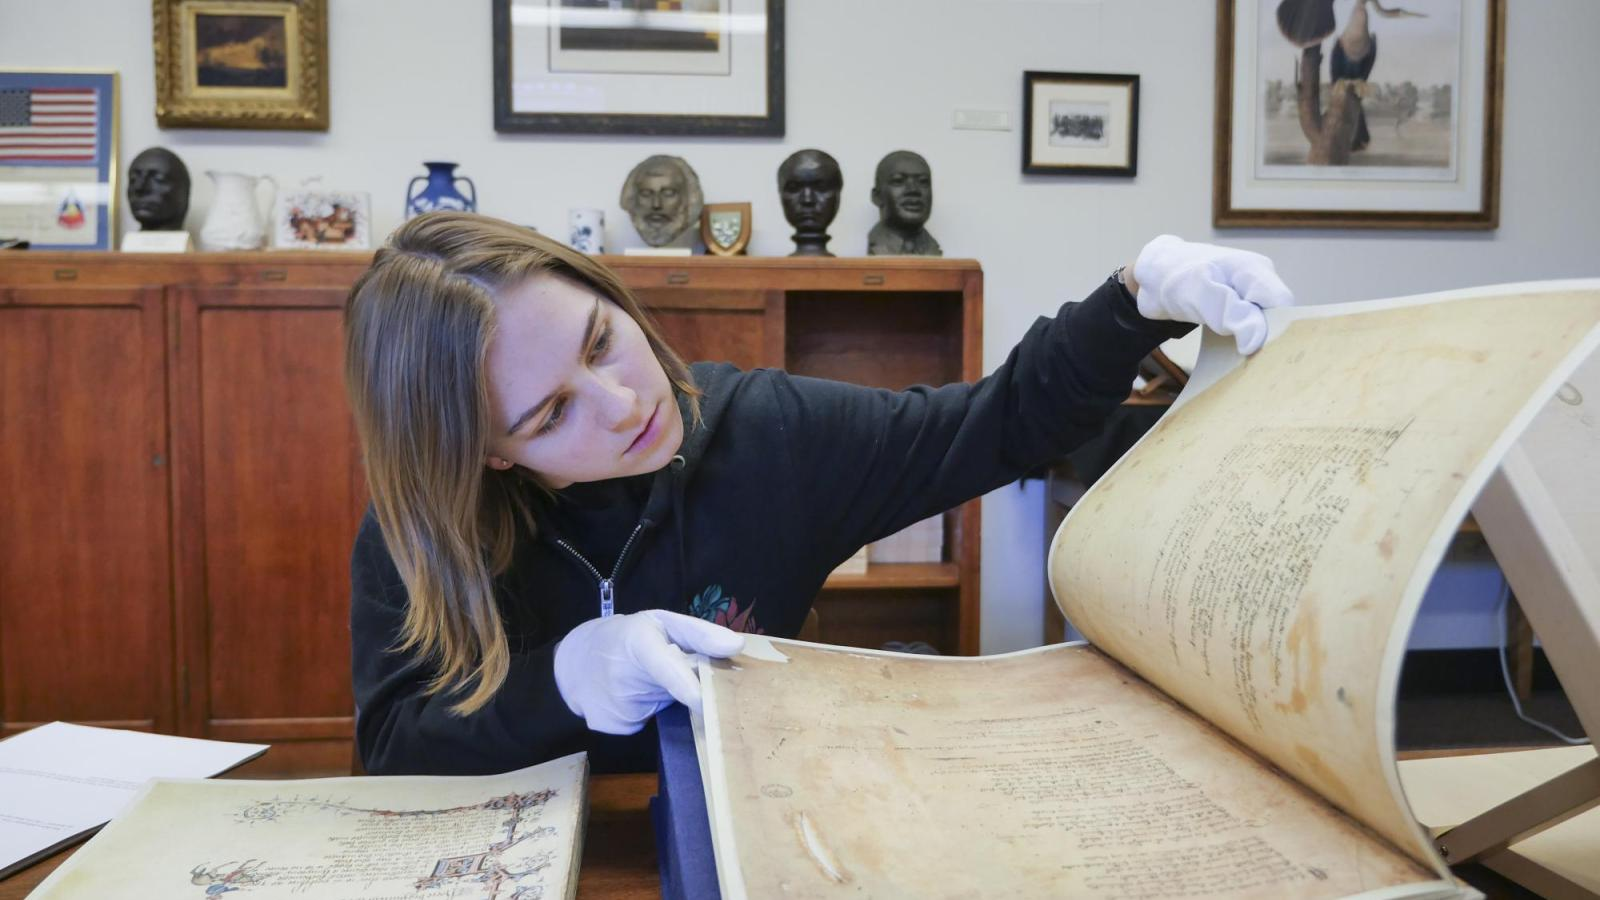 Student looks through old history book with gloves